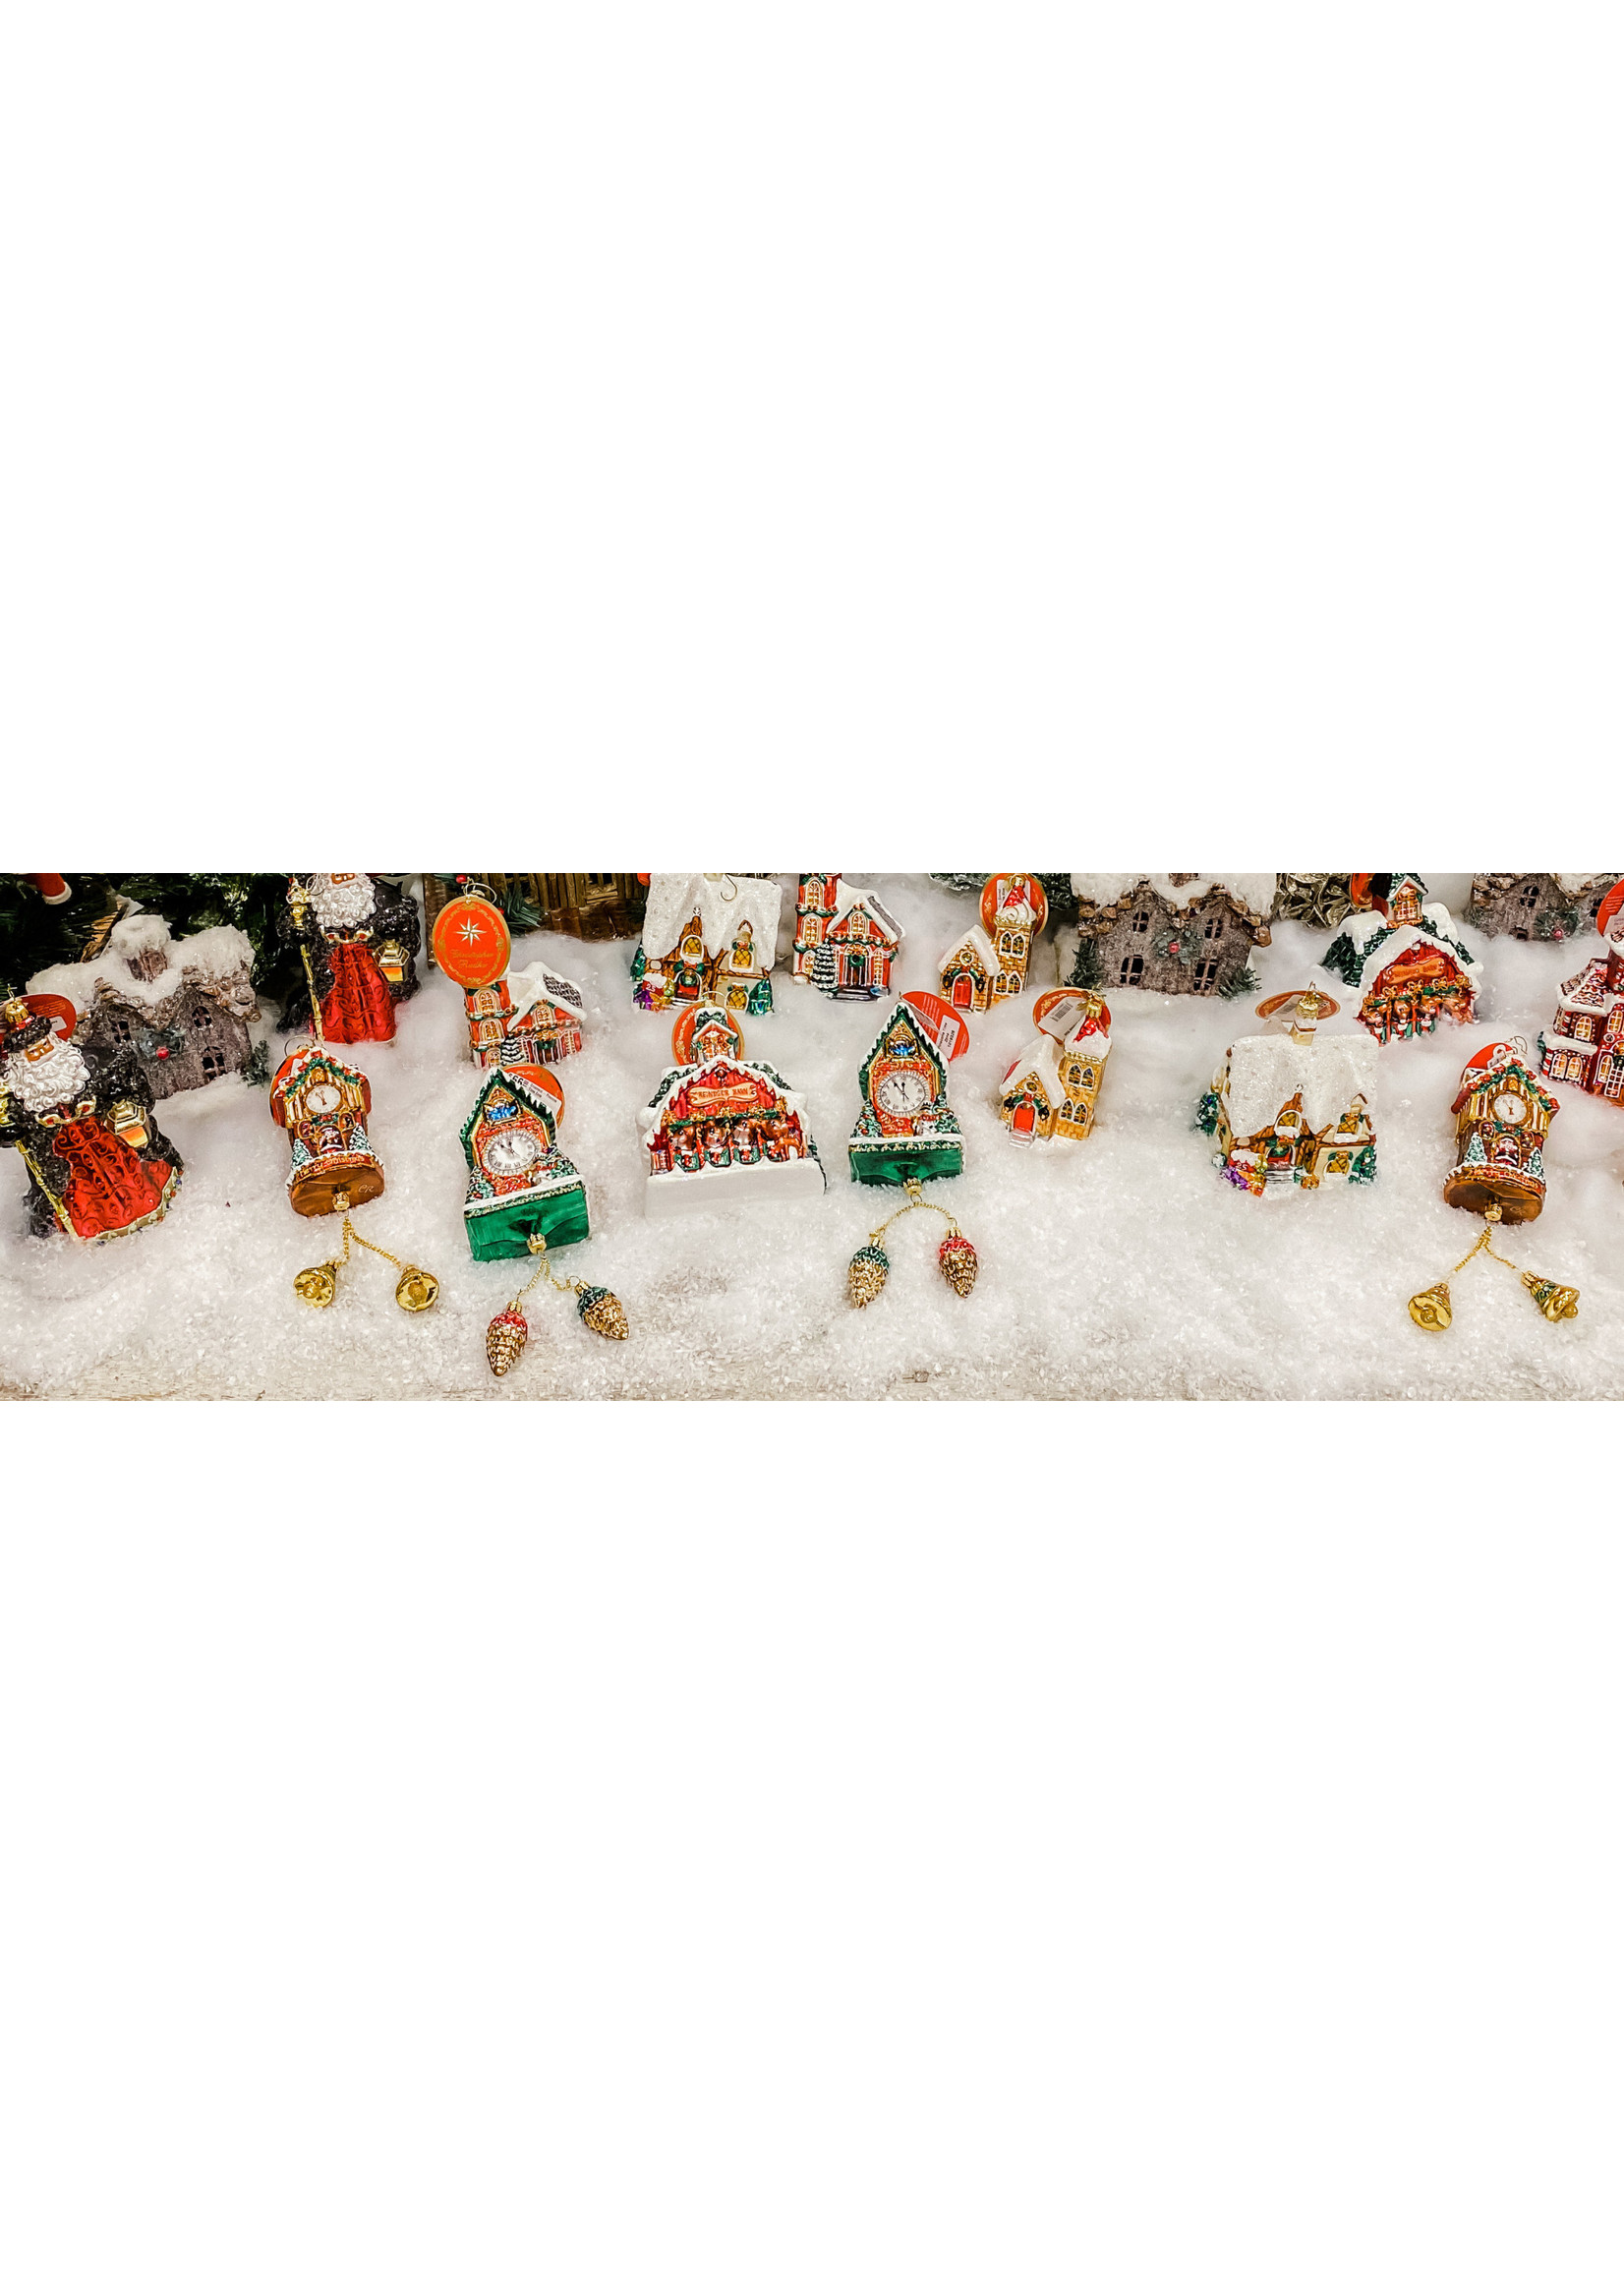 Christopher Radko Ornament - Home for the Holidays!